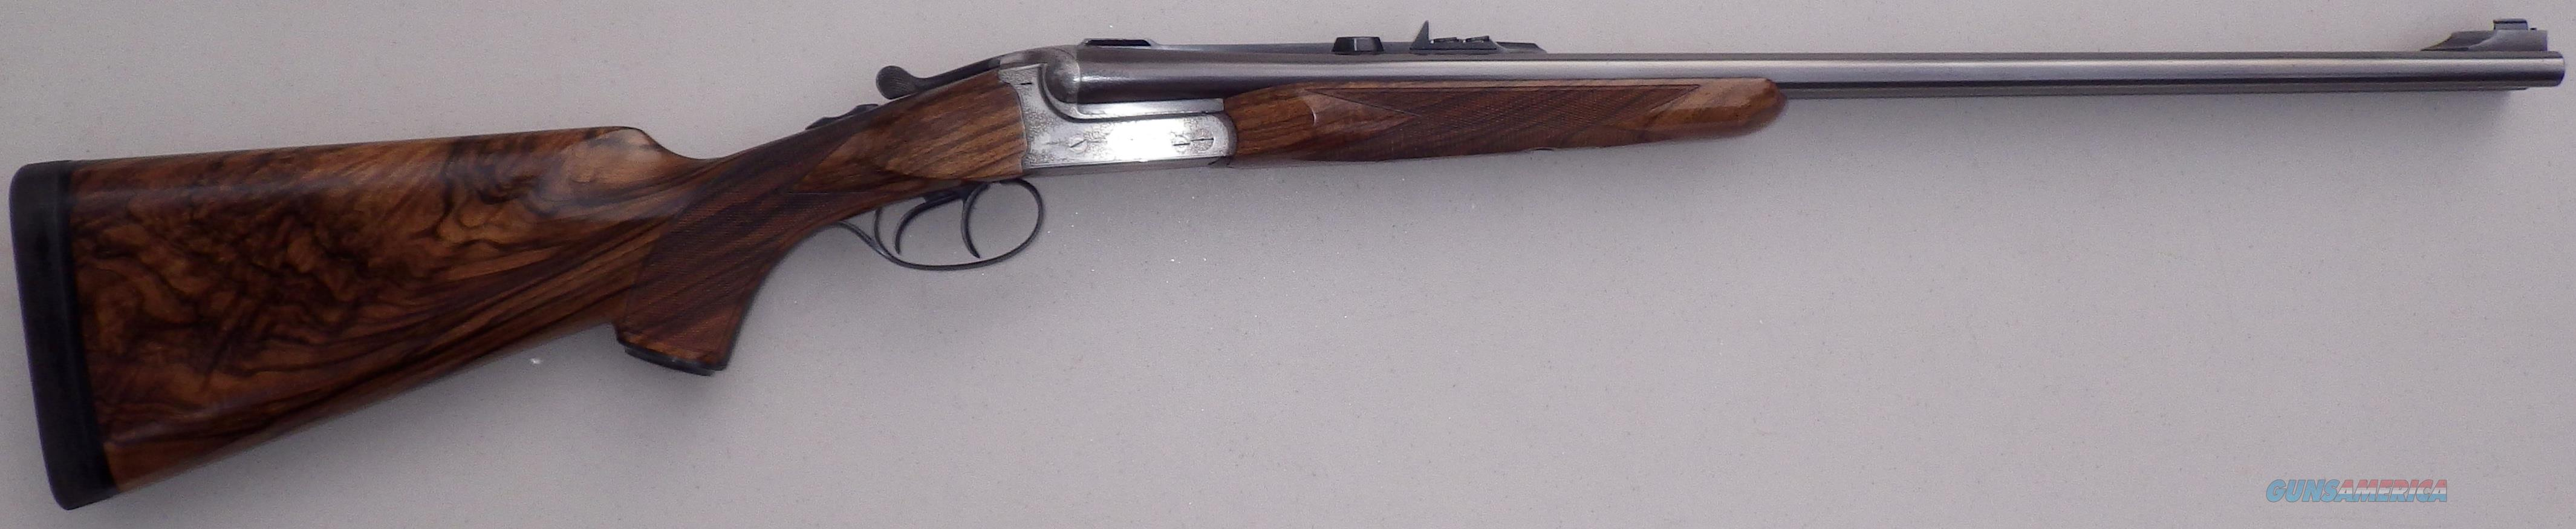 Rigby .35 Rigby SxS double rifle, Barry Lee Hands engraved, supply of custom ammo  Guns > Rifles > Double Rifles (Misc.)